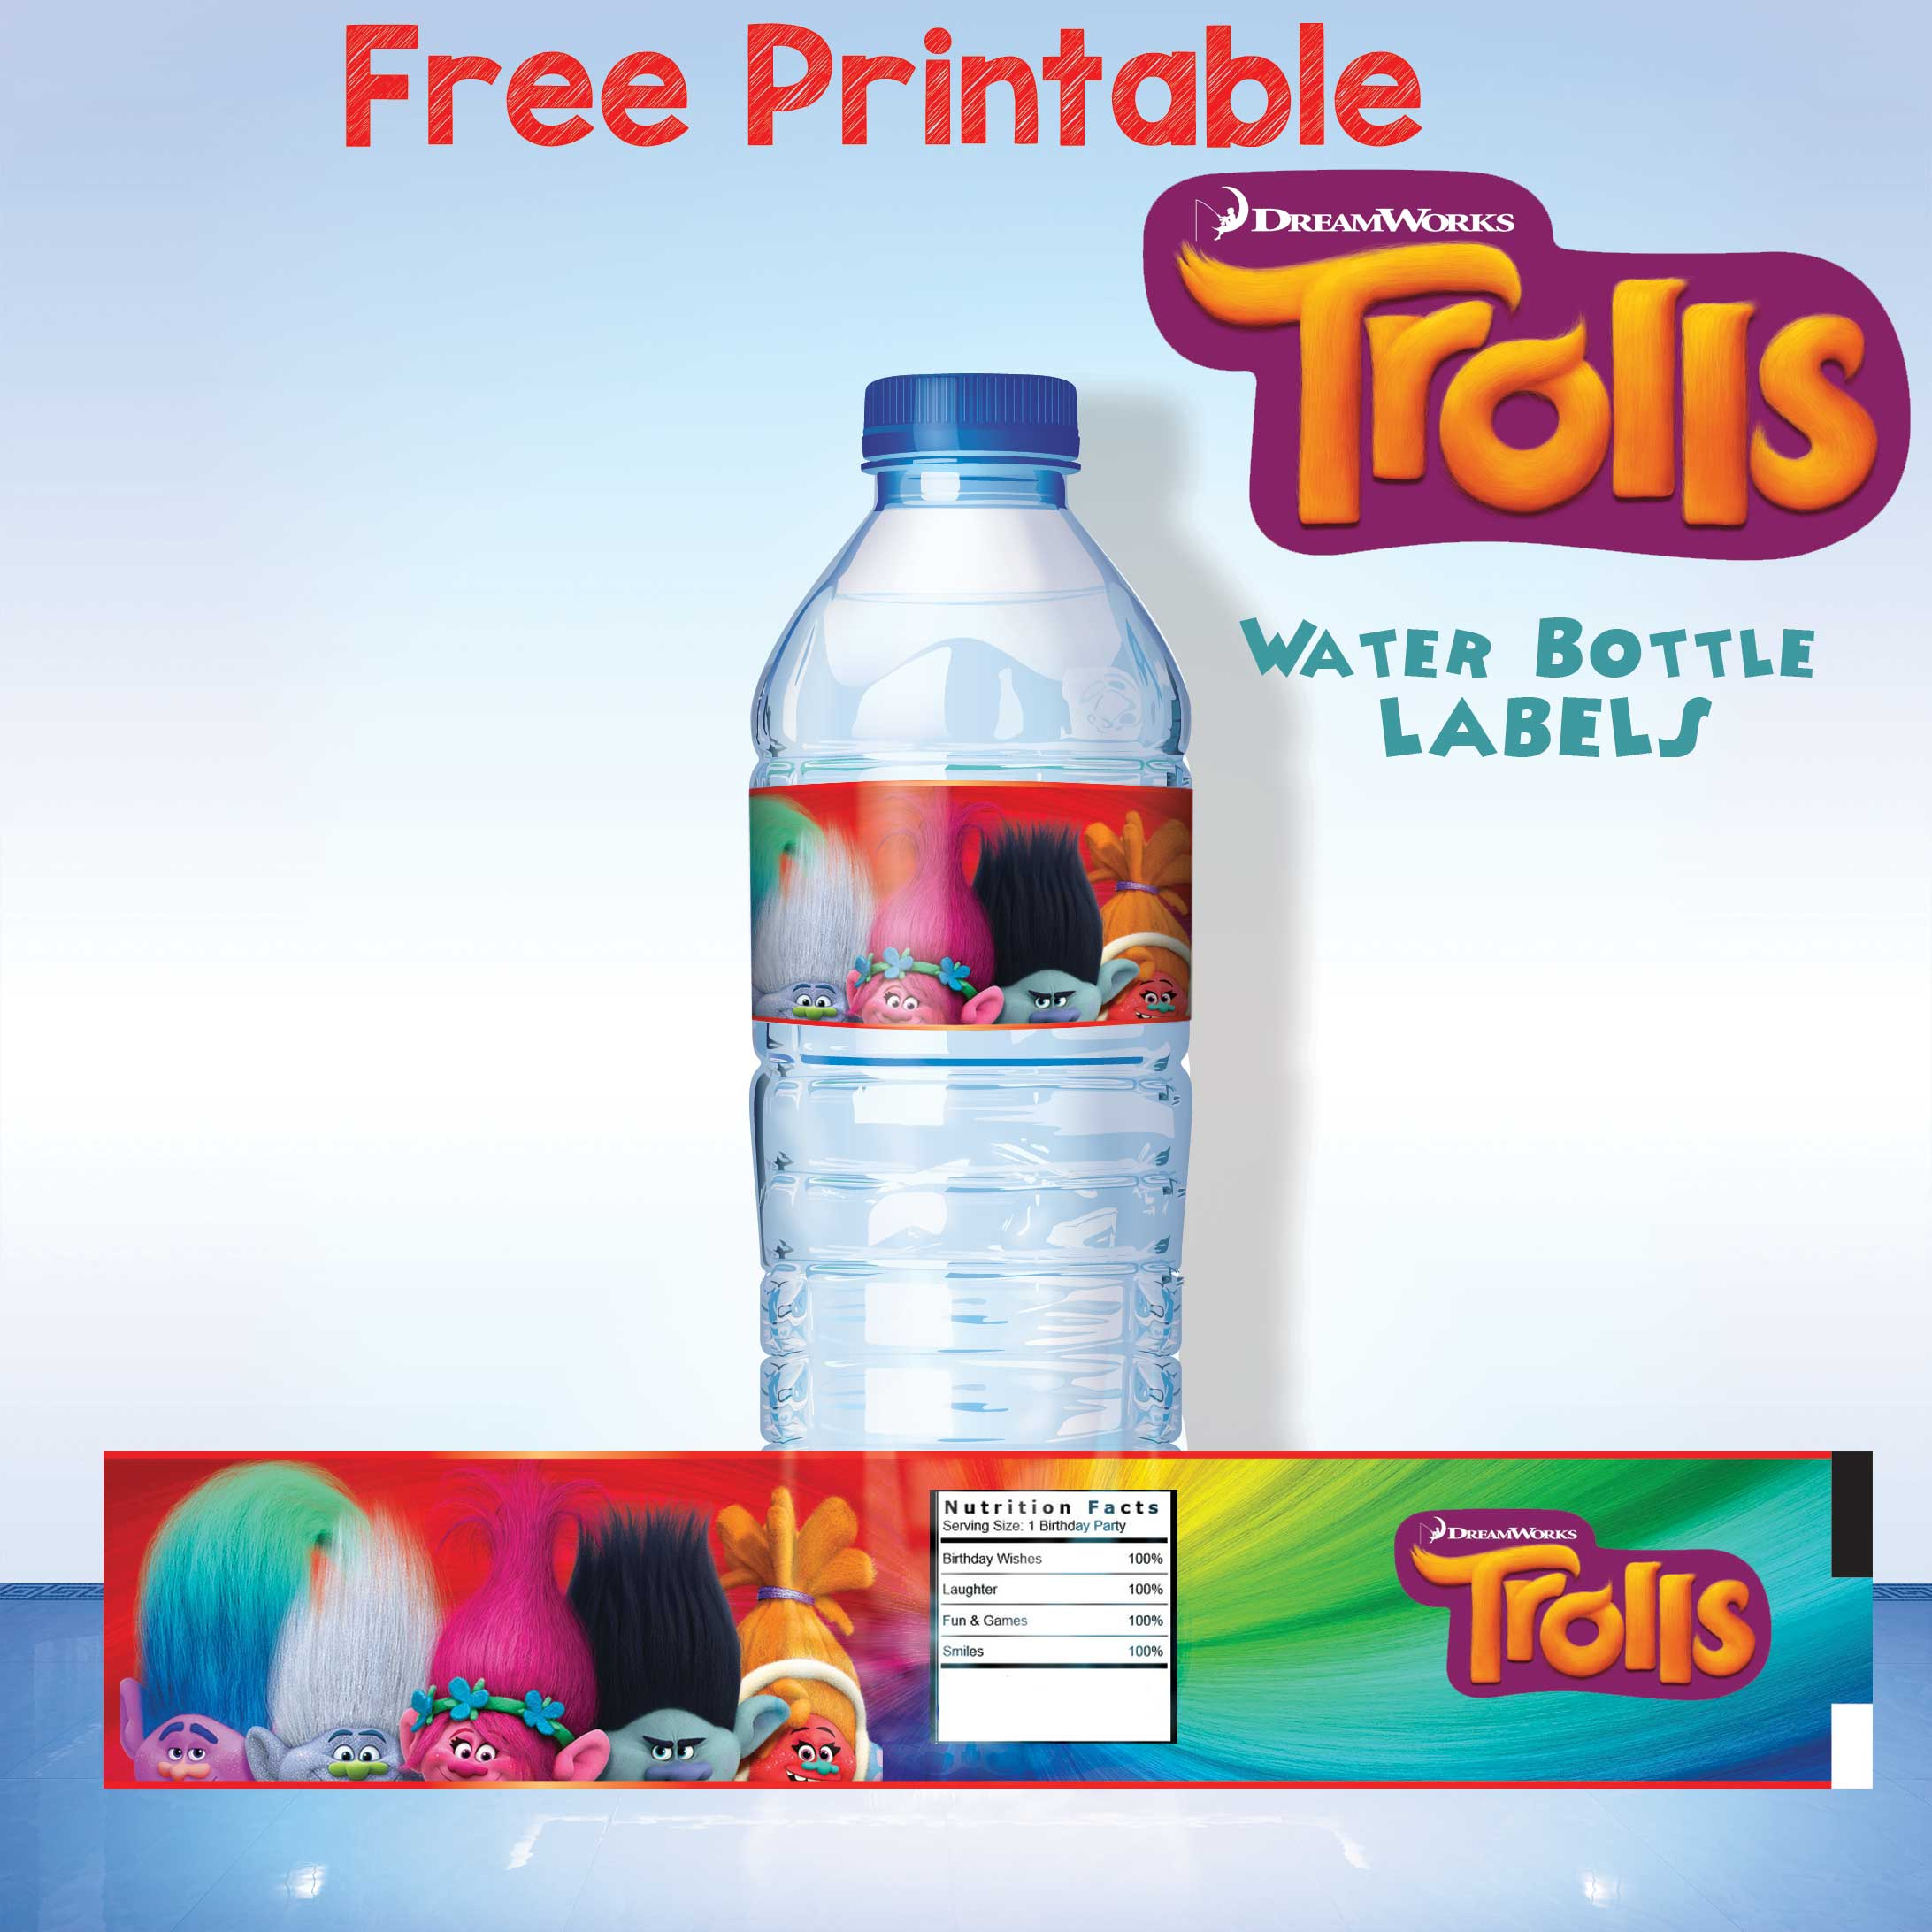 image about Printable Water Bottle Labels Free known as No cost Printable Trolls H2o Bottle Label No cost Invitation